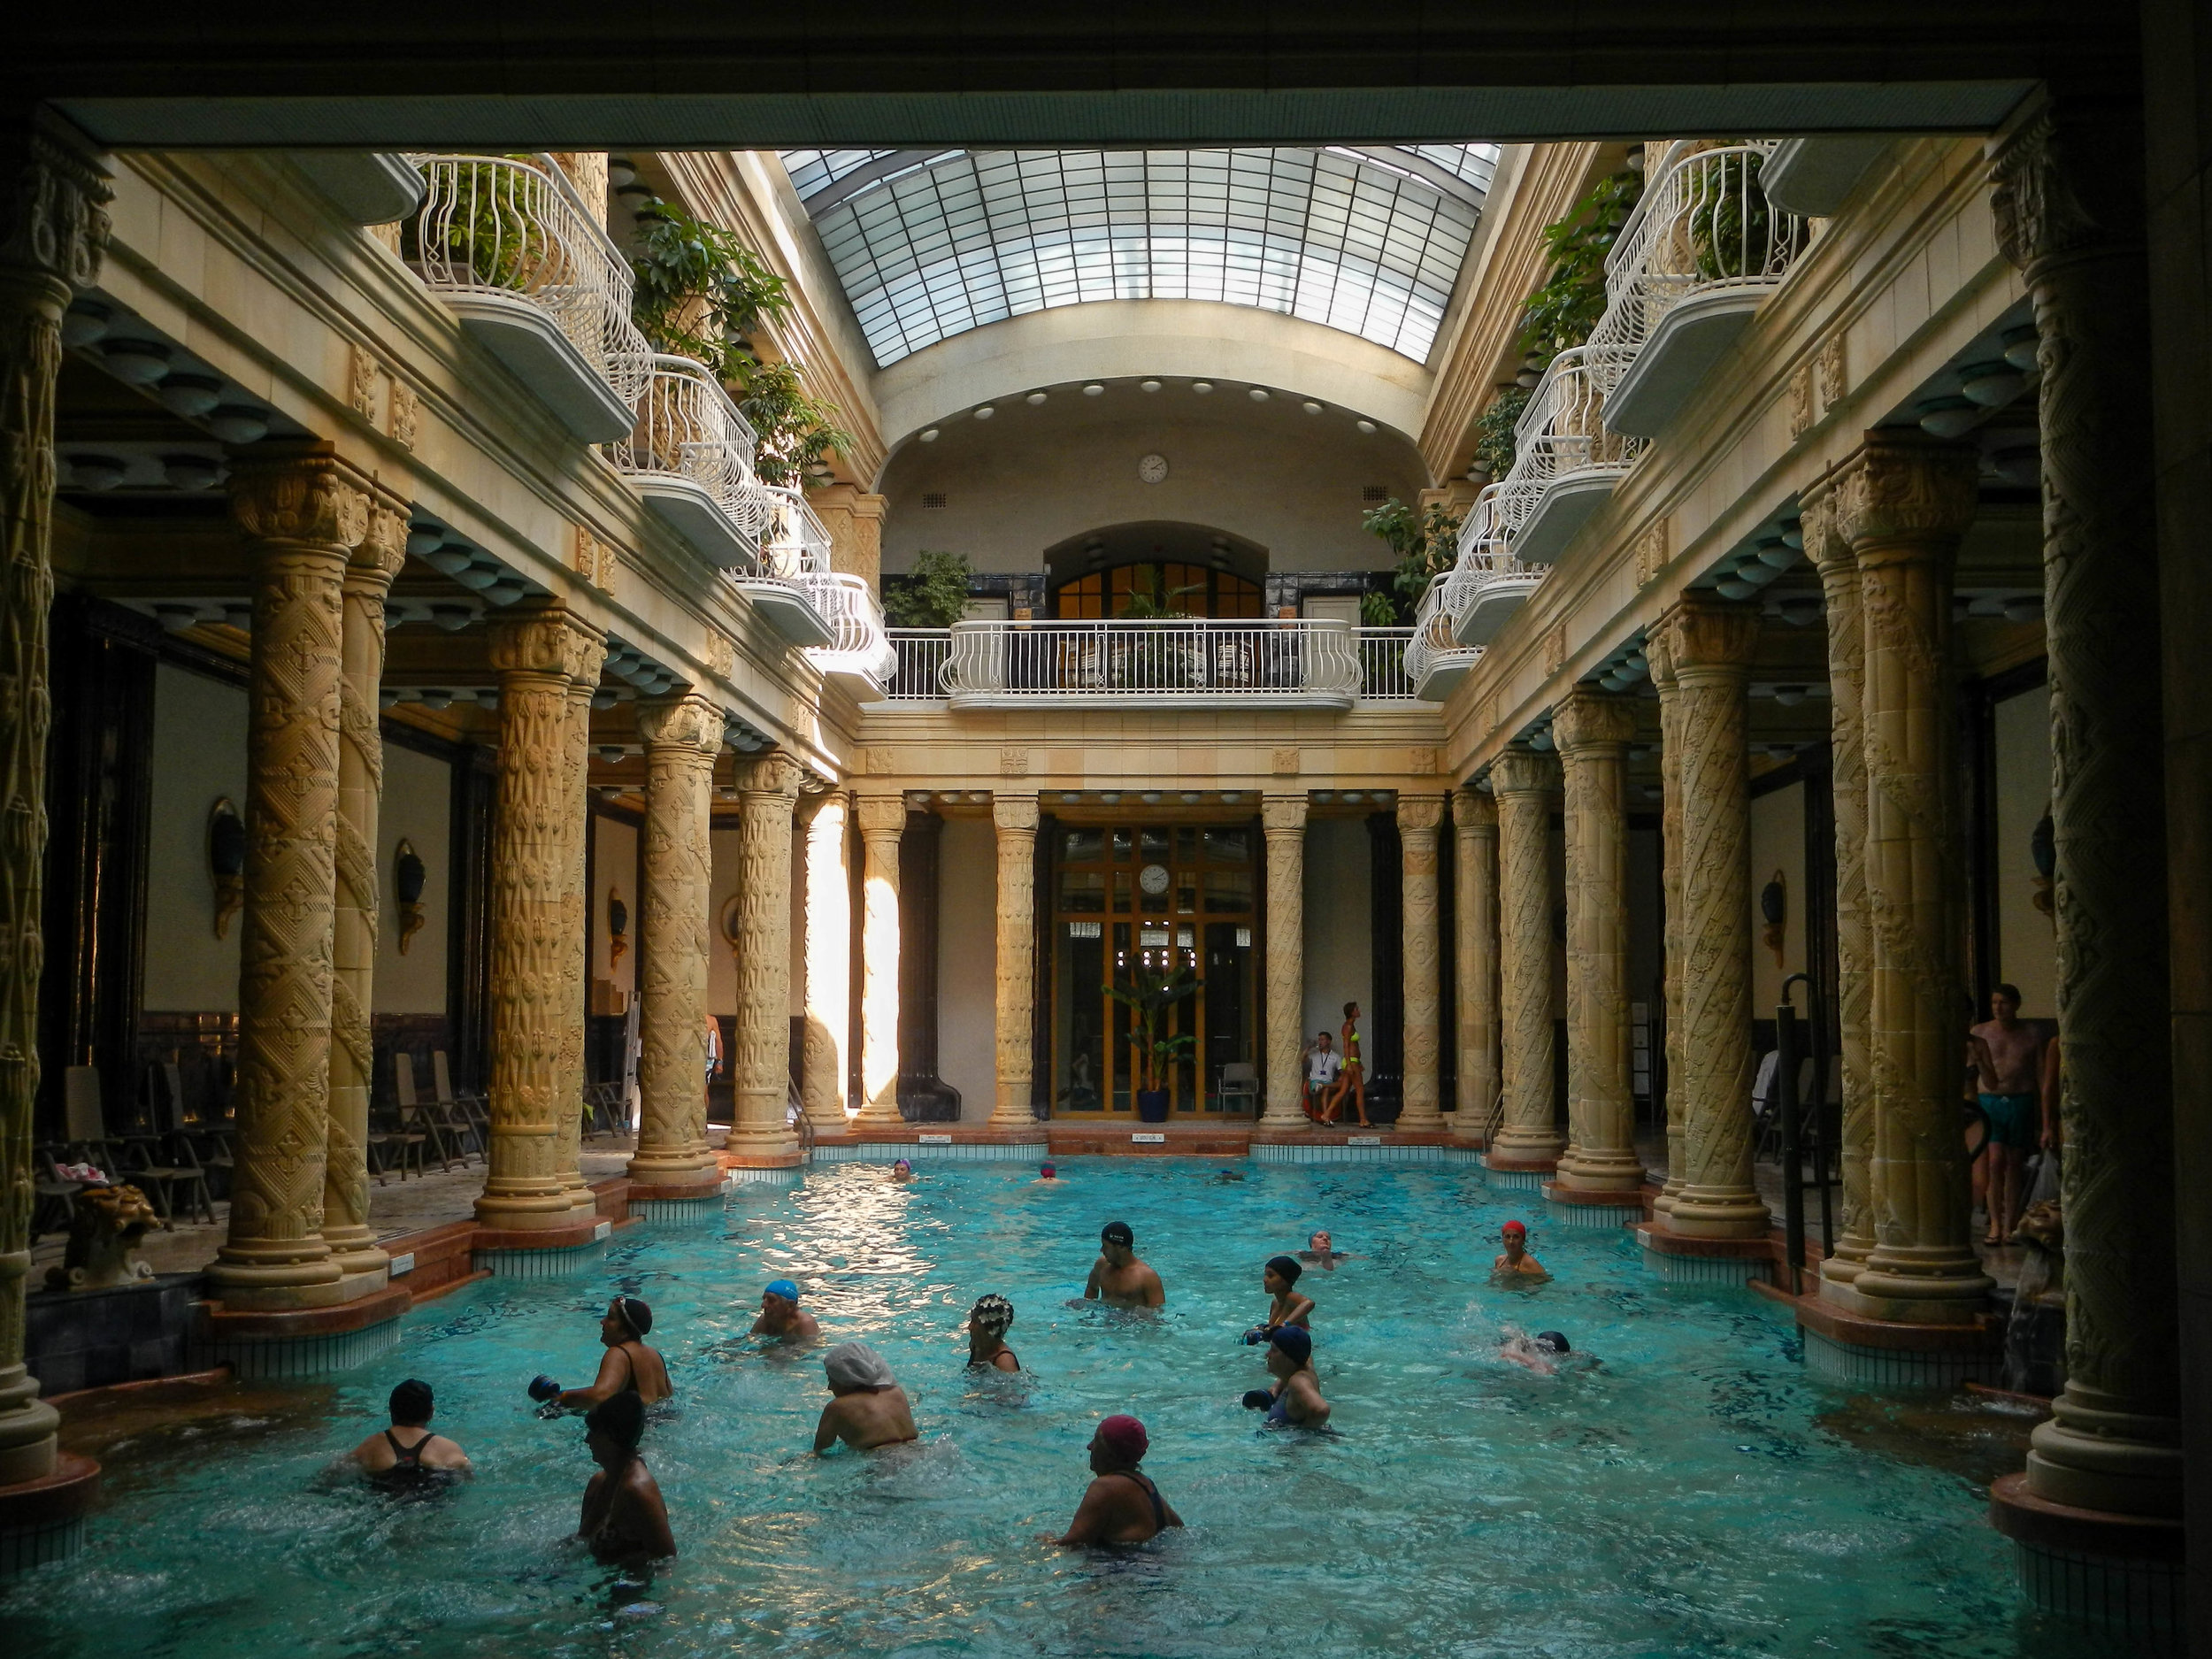 Thermal pools, Danubius Hotel Gellerrt, Budapest